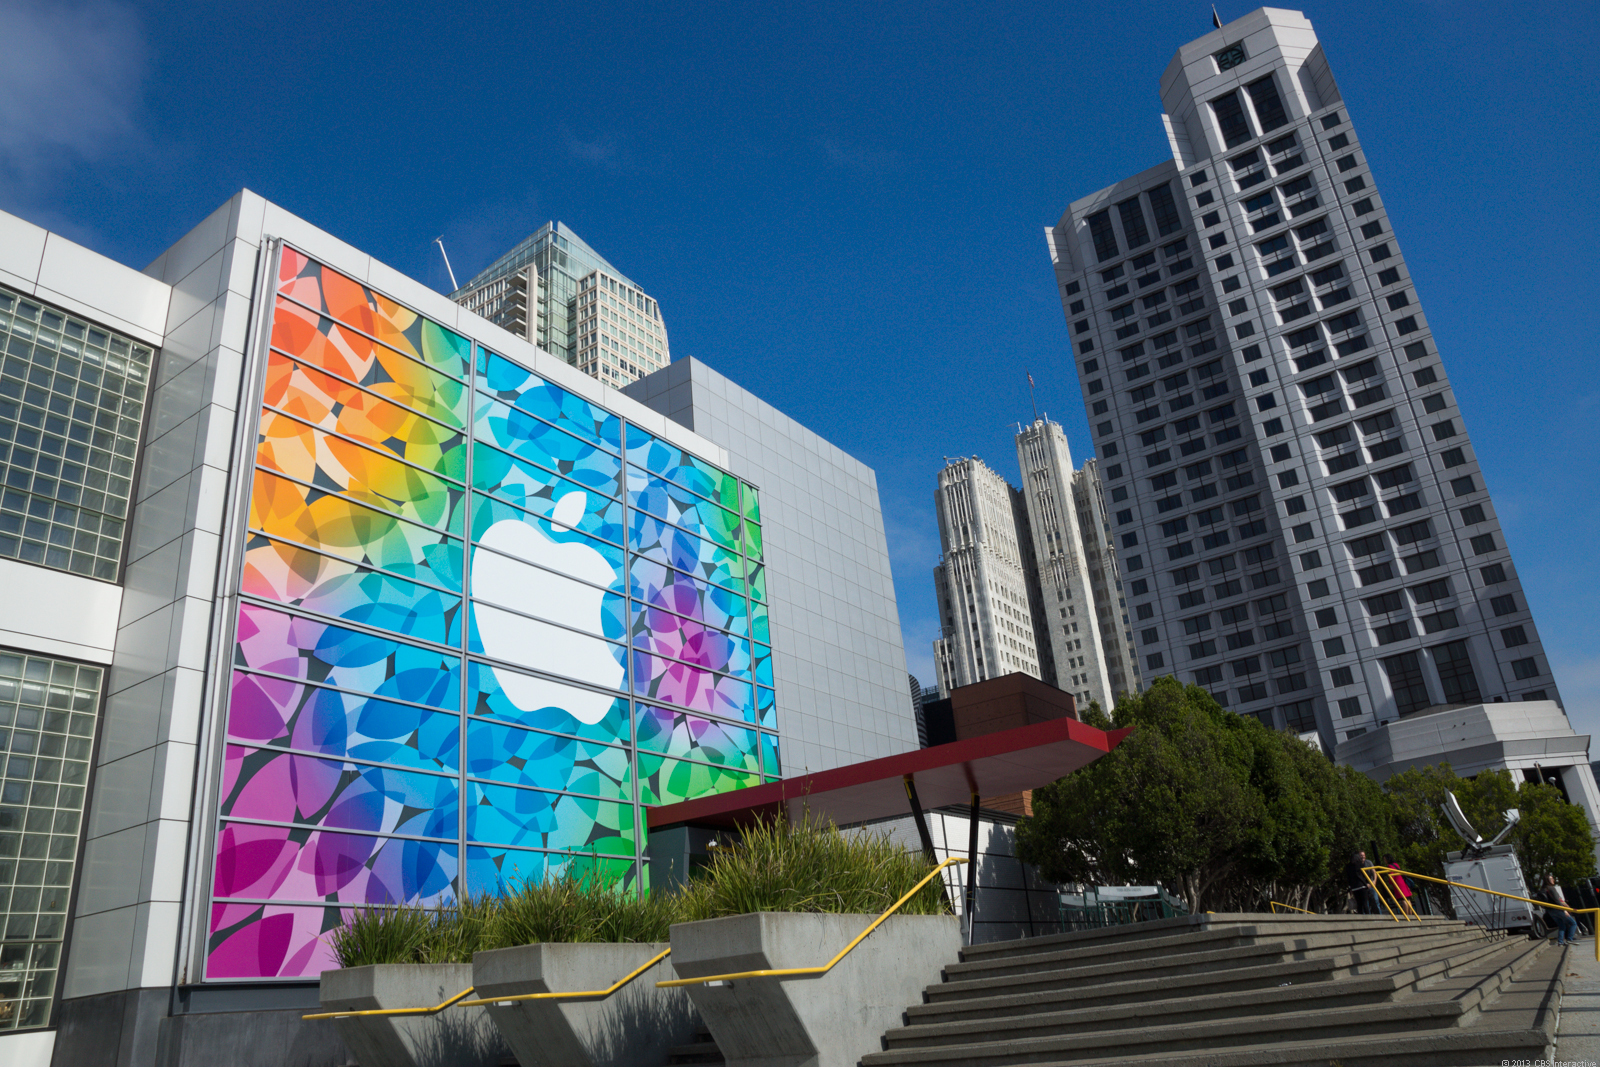 The Yerba Buena Center for the Arts Theater in San Francisco, where Apple's event will take place.